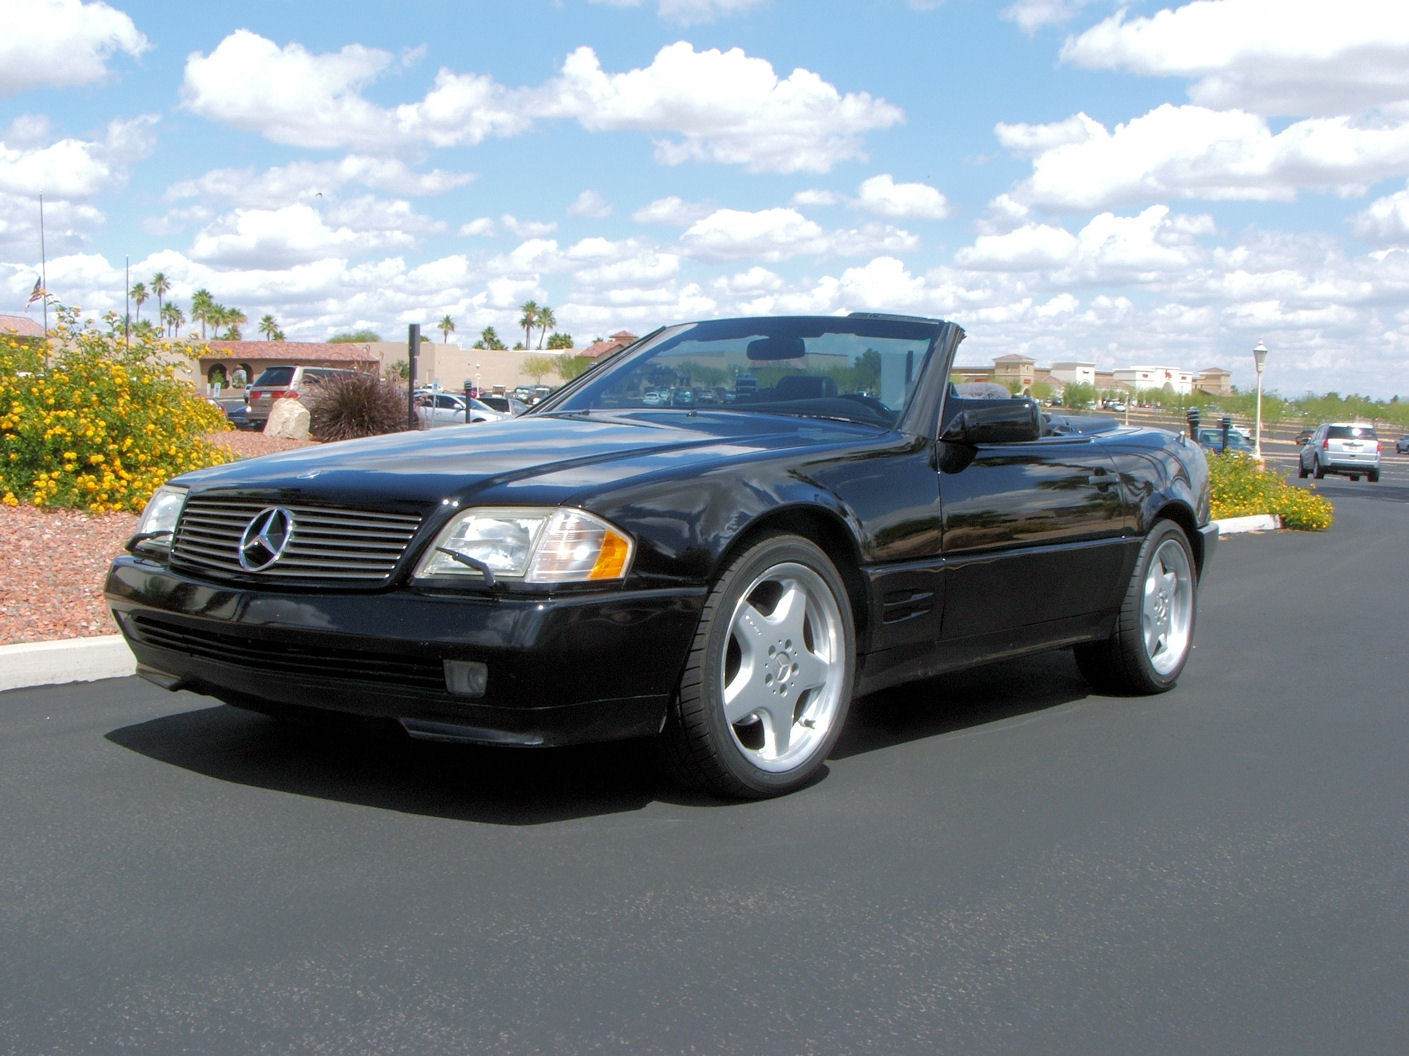 1994 mercedes benz 500sl convertible for sale for Used convertible mercedes benz for sale